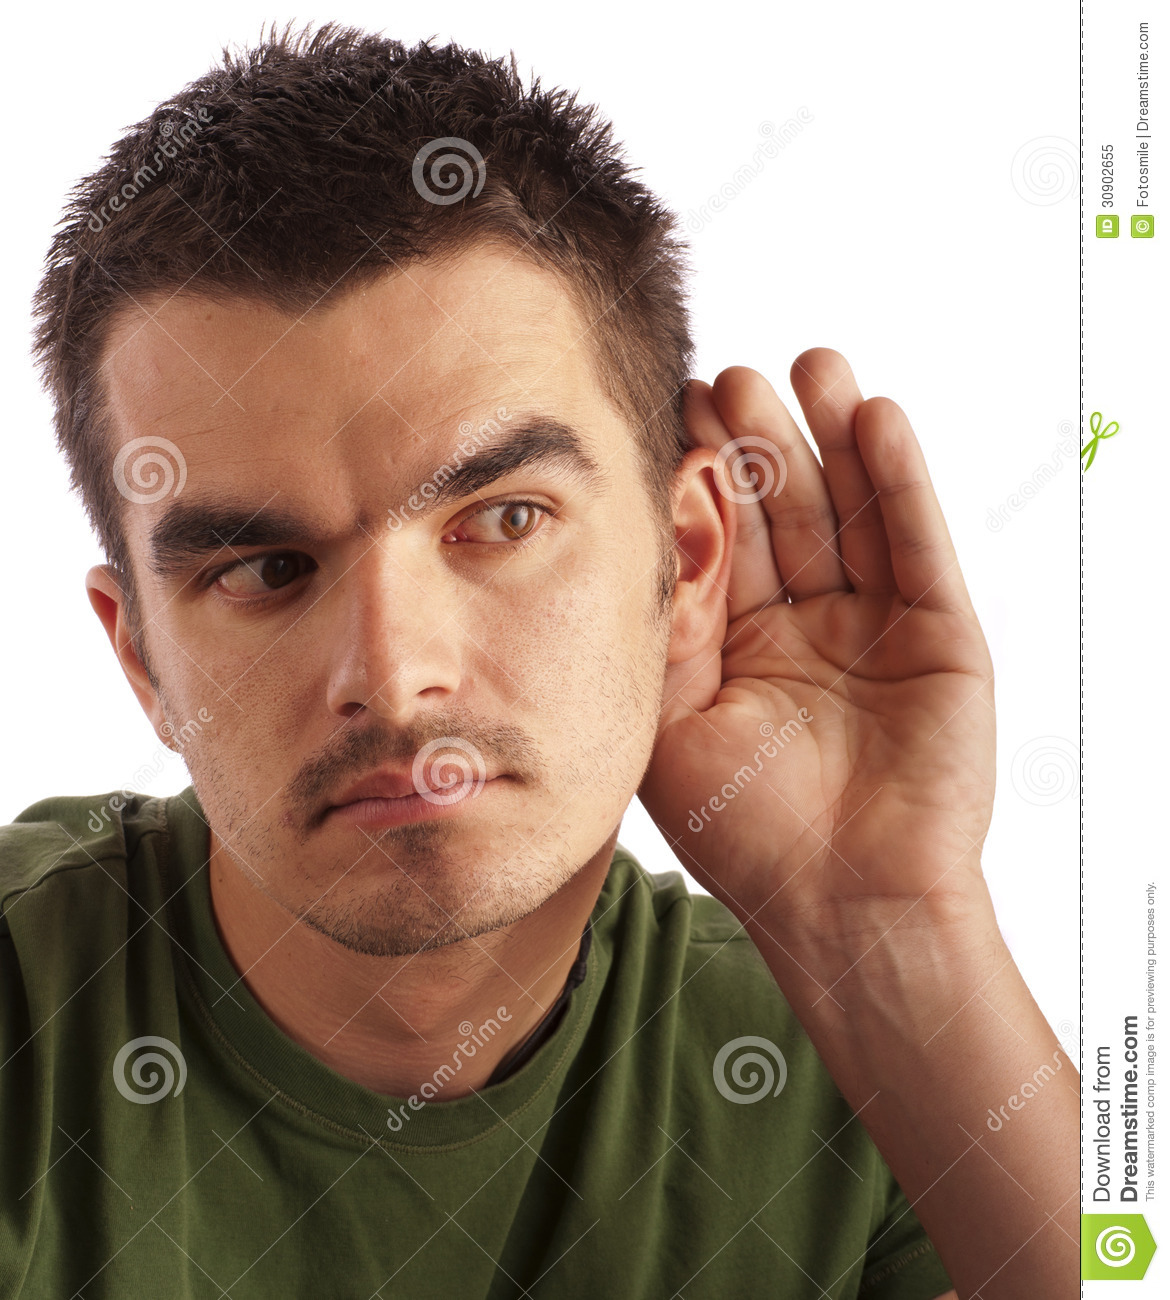 Eavesdropping Royalty Free Stock Photo - Image: 30902655